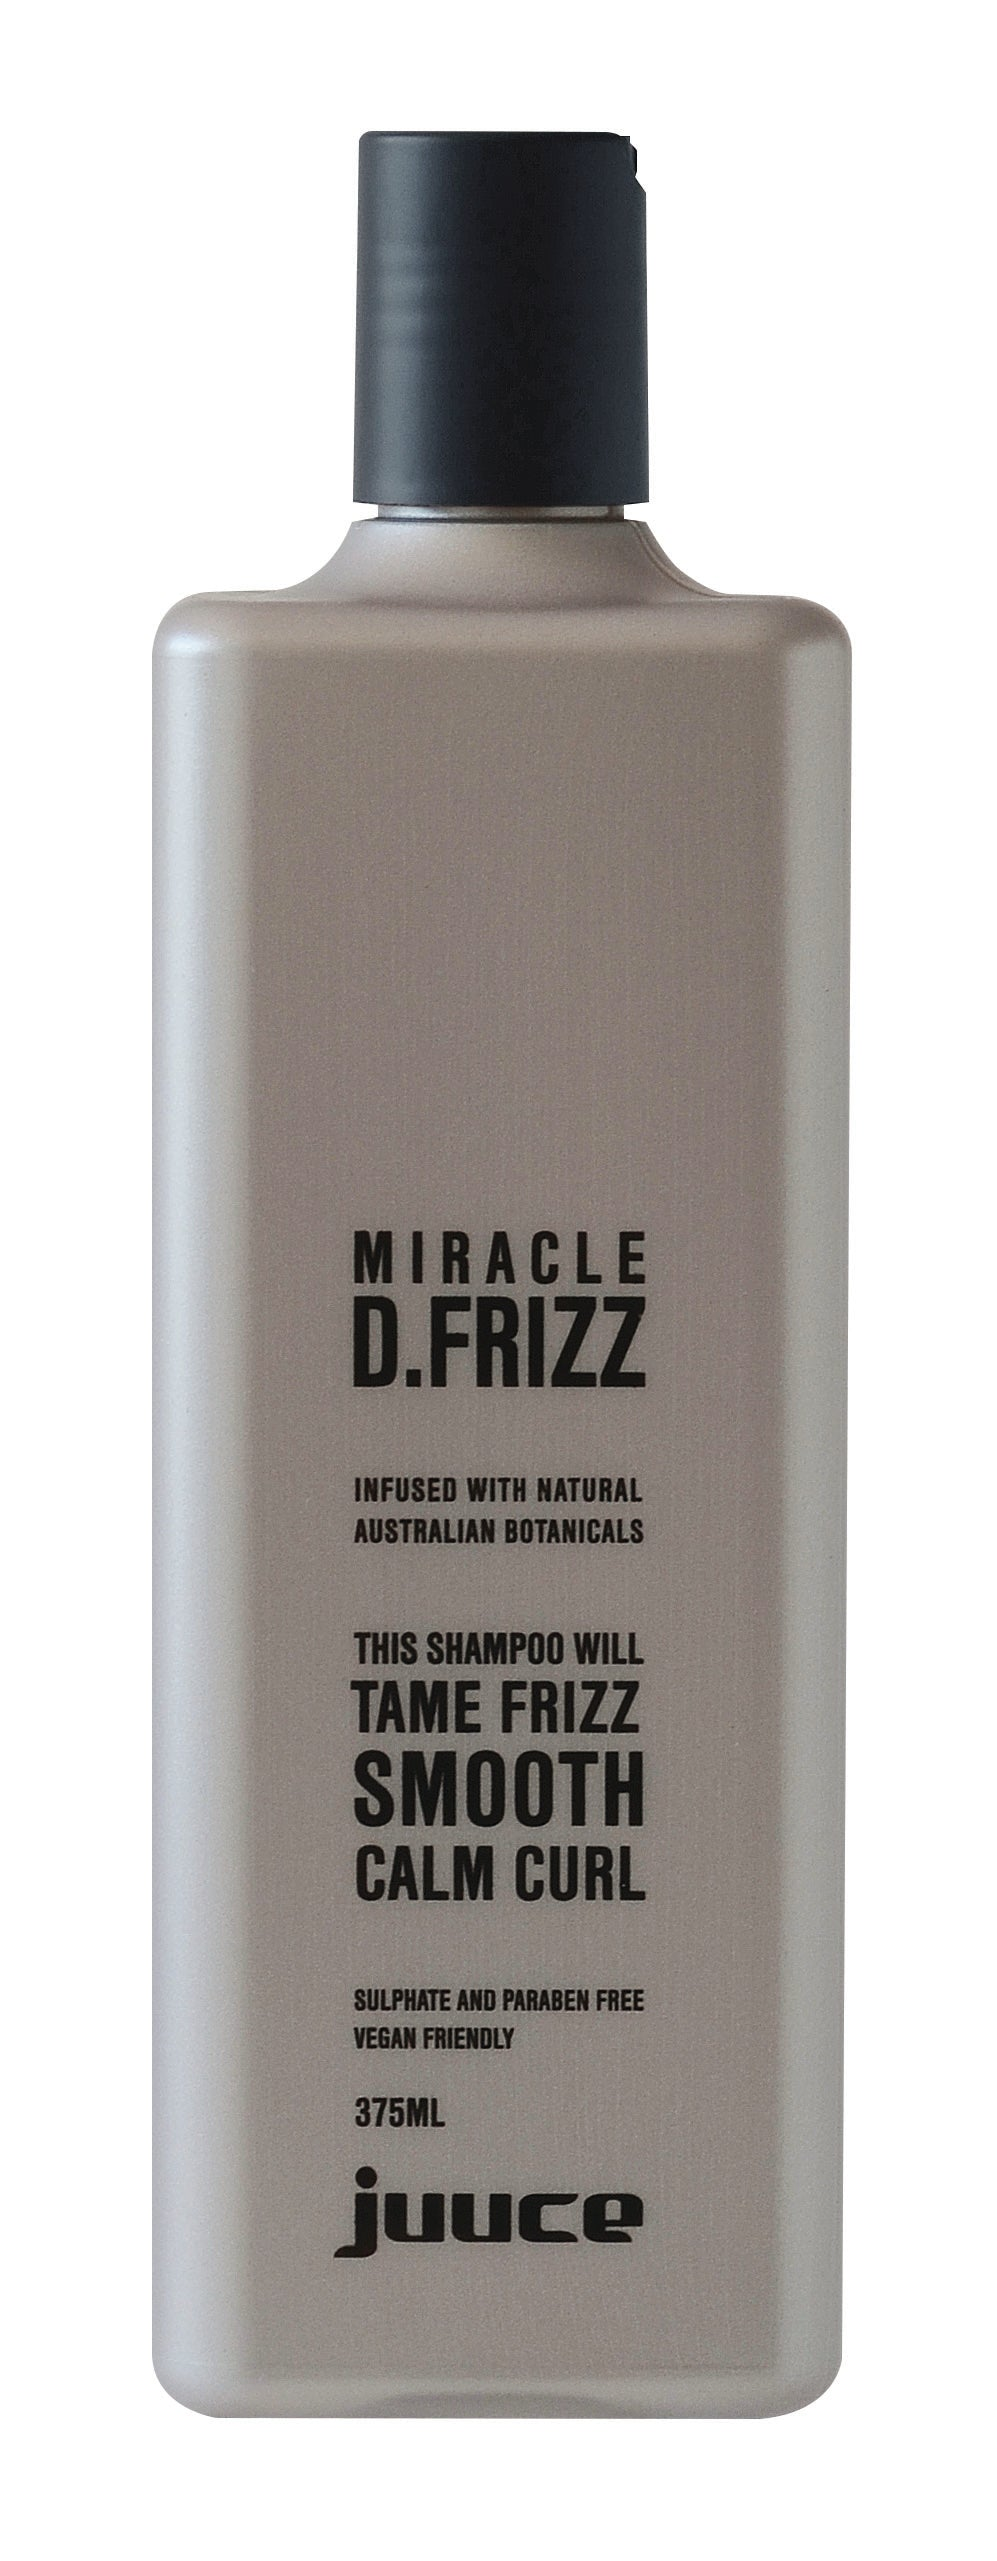 Juuce Miracle D Frizz Shampoo 375ml